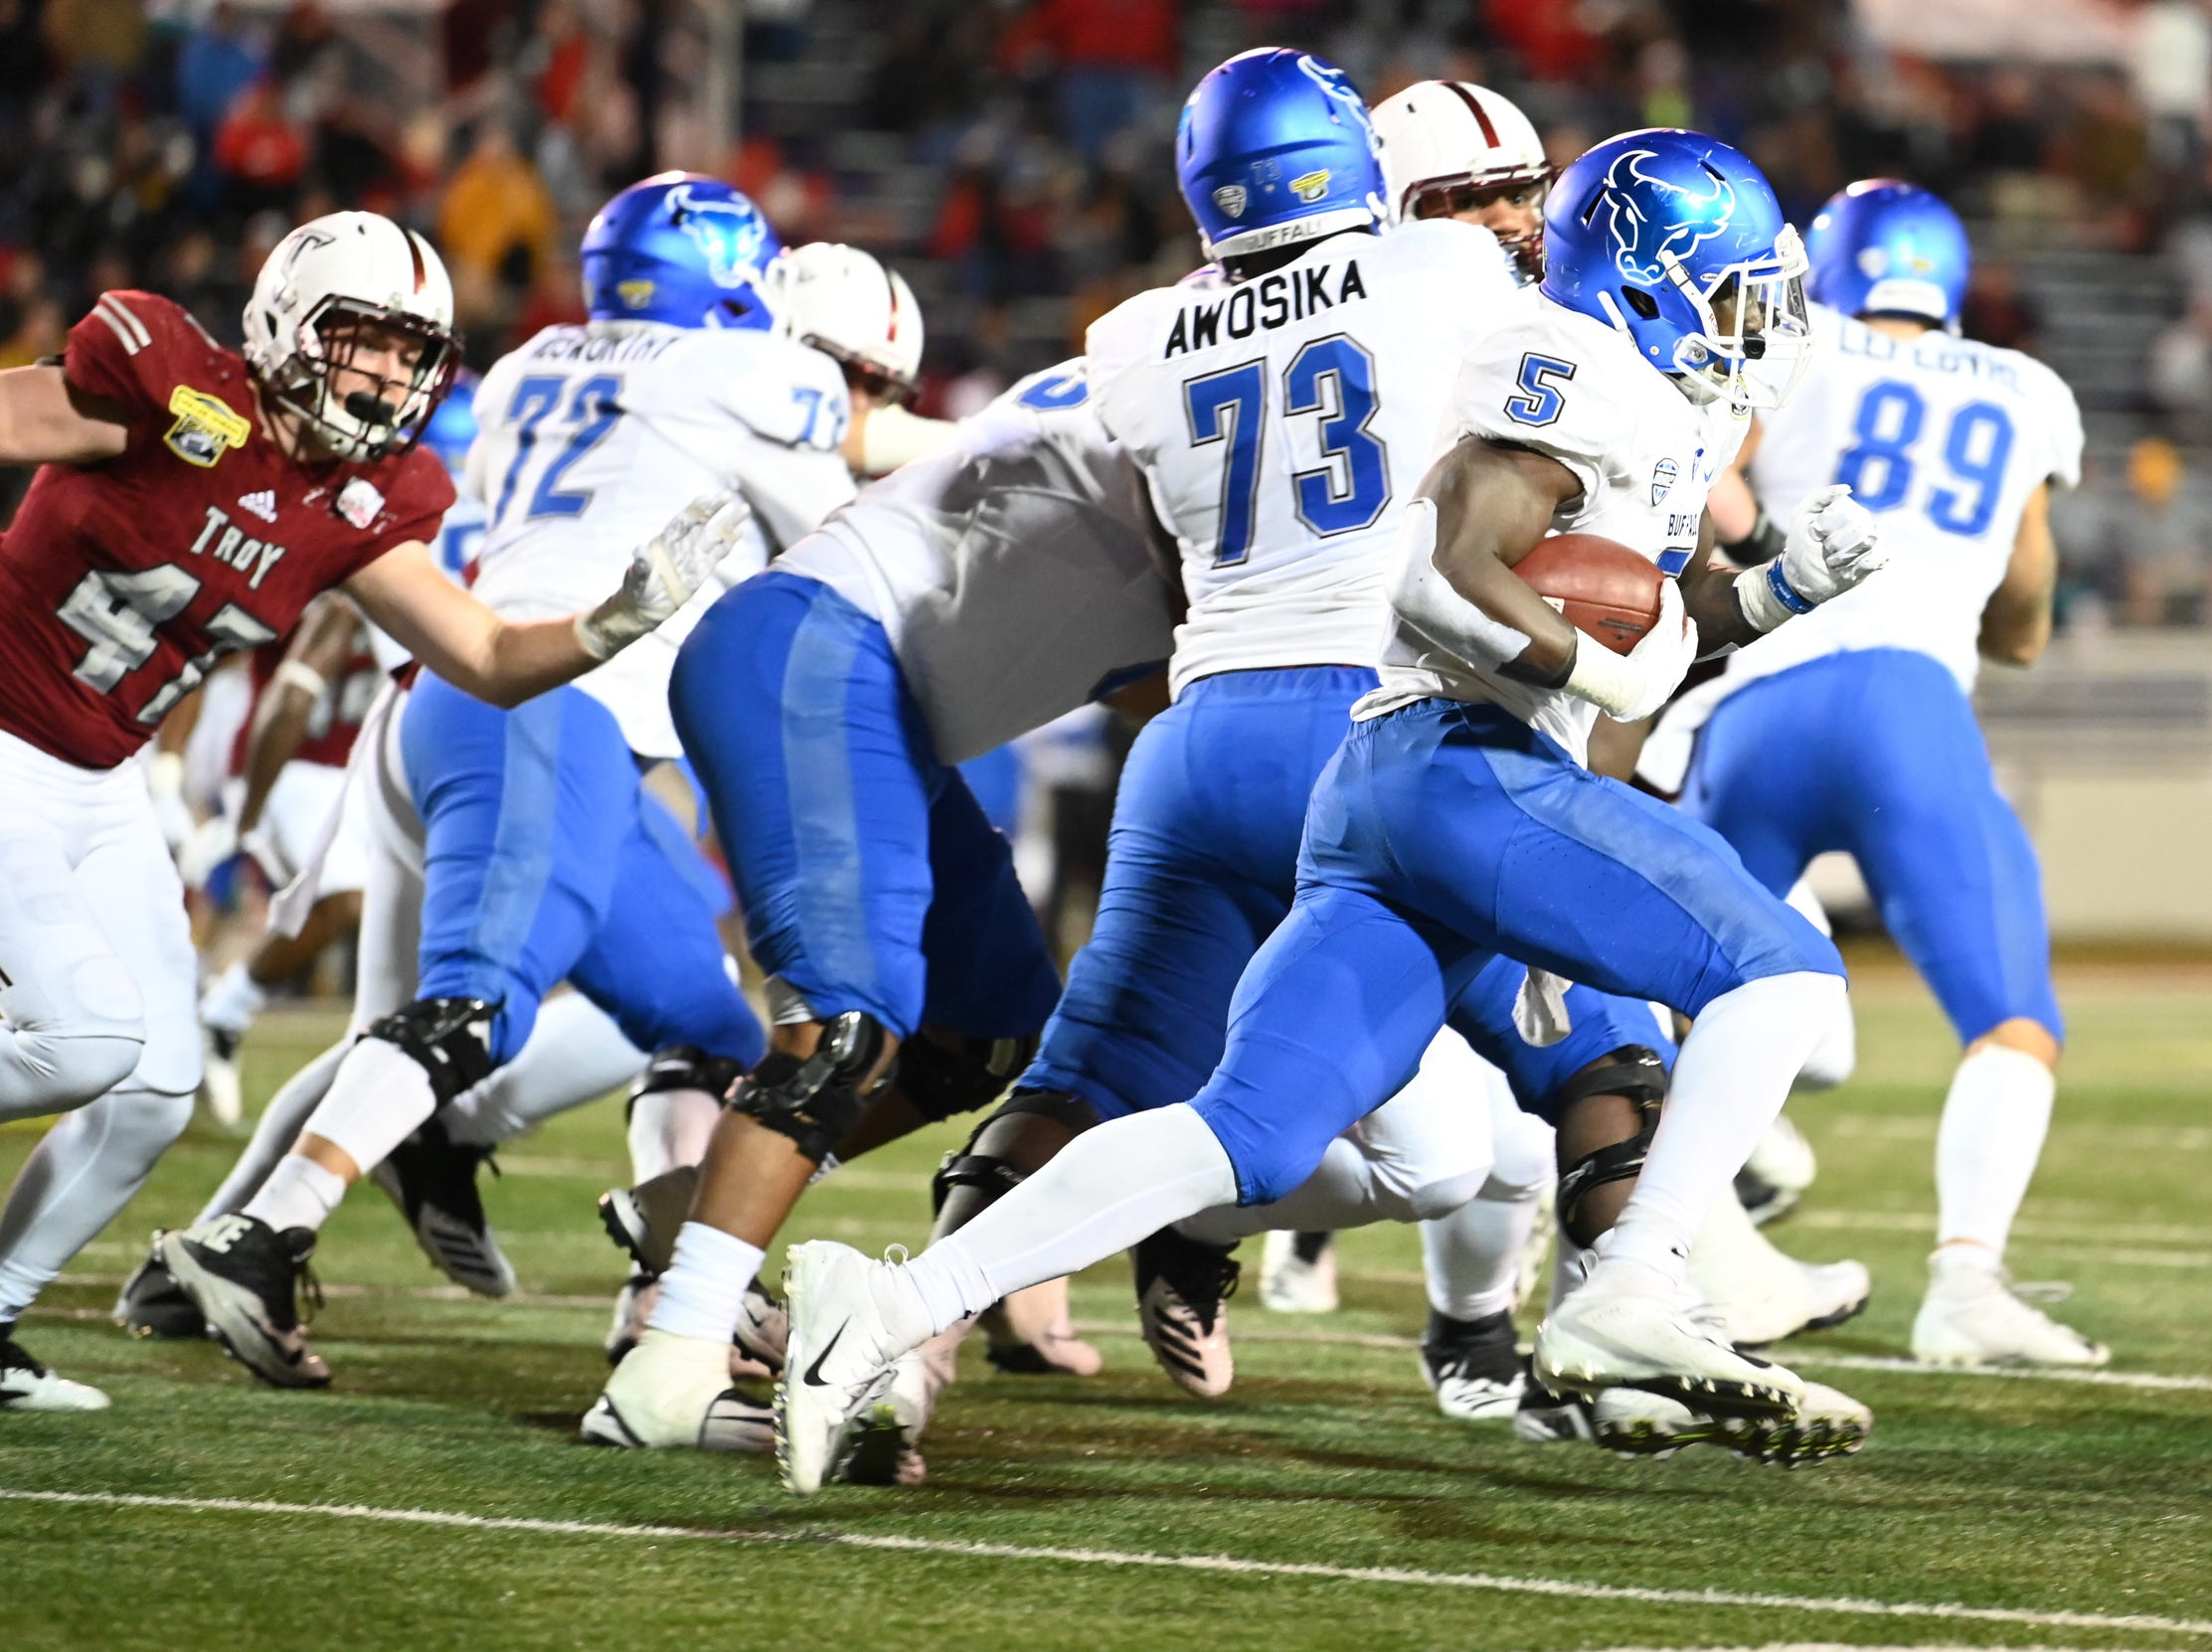 Buffalo Bulls running back Kevin Marks (5) runs the ball outside against during the Dollar General Bowl held at Ladd-Peebles Stadium in Mobile on Saturday, Dec. 22, 2018.